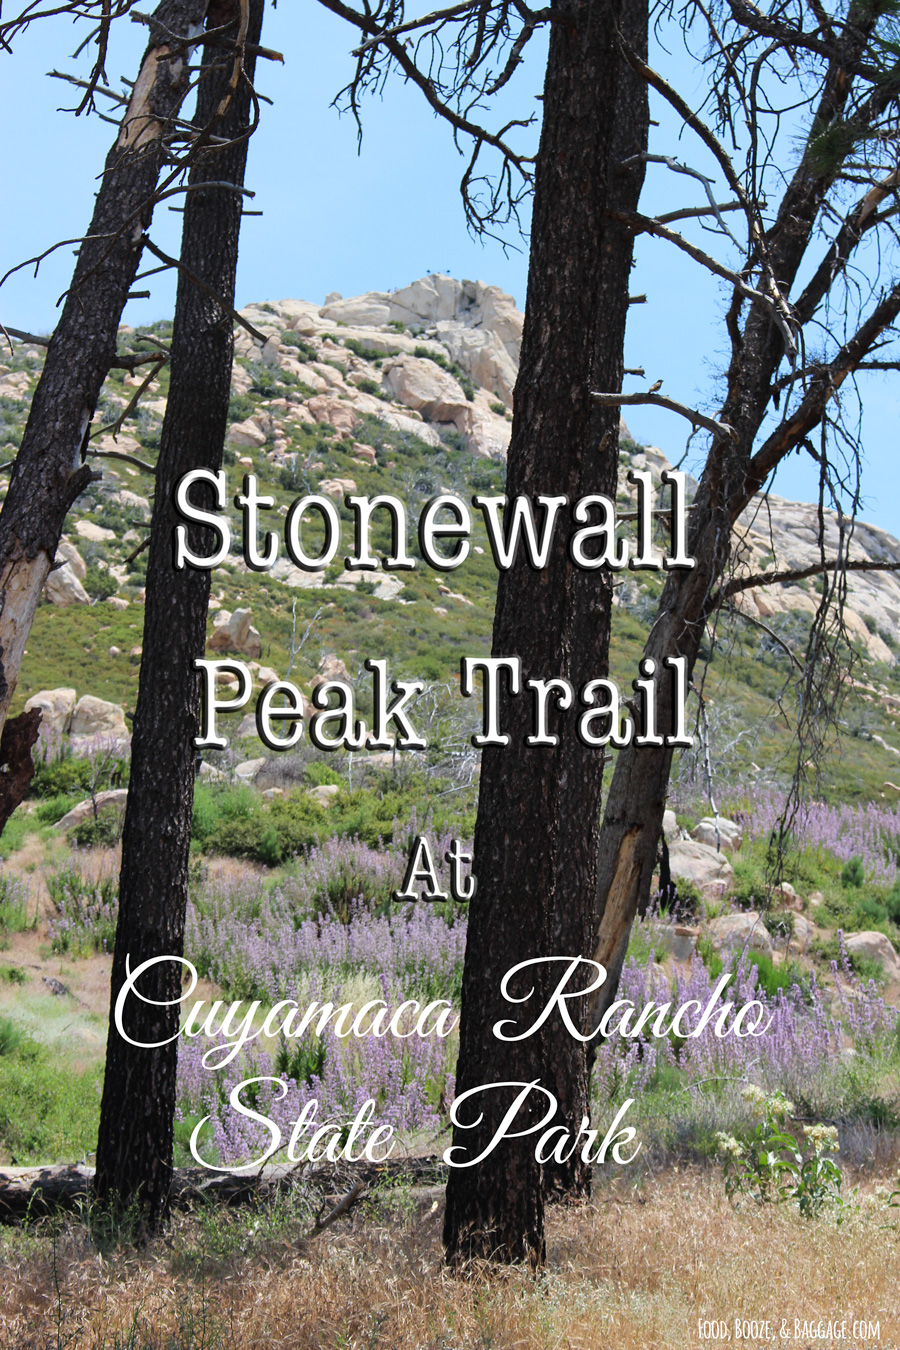 Stonewall Peak Trail at Cuyamaca Rancho